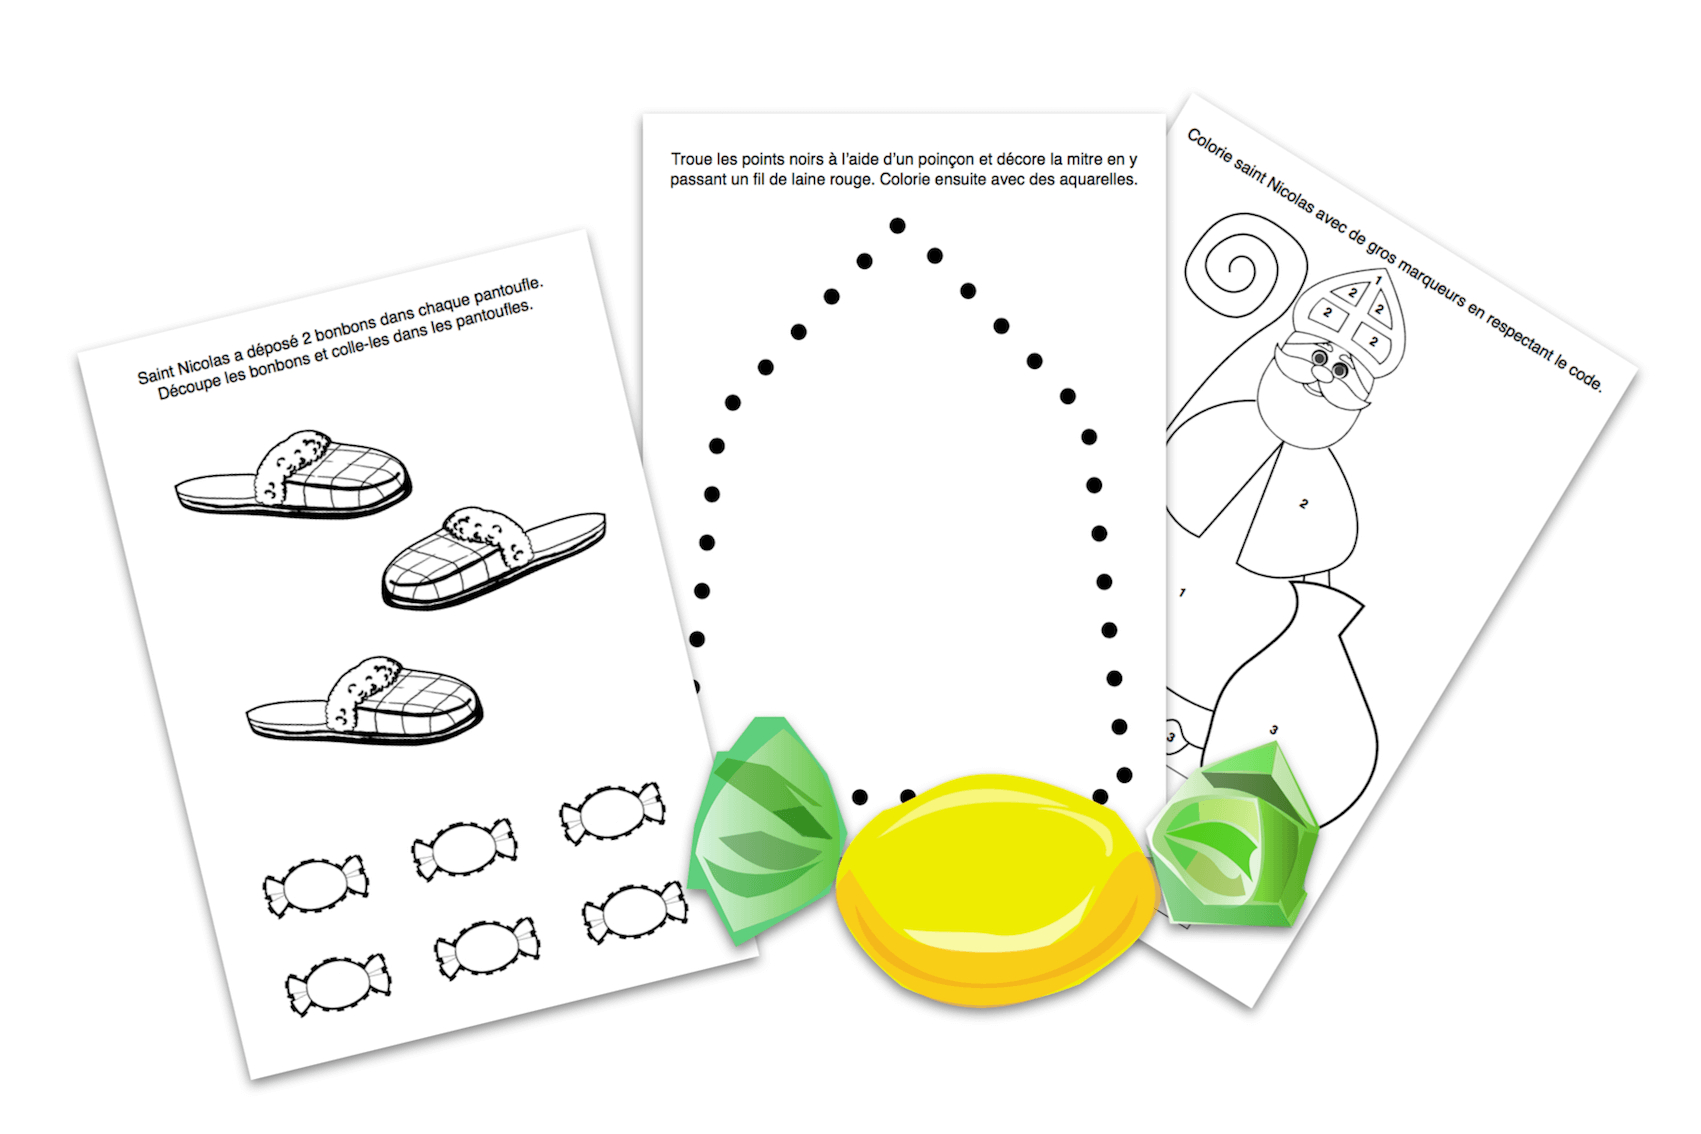 Exercices Maternelle à Moyen Section Maternelle Exercice